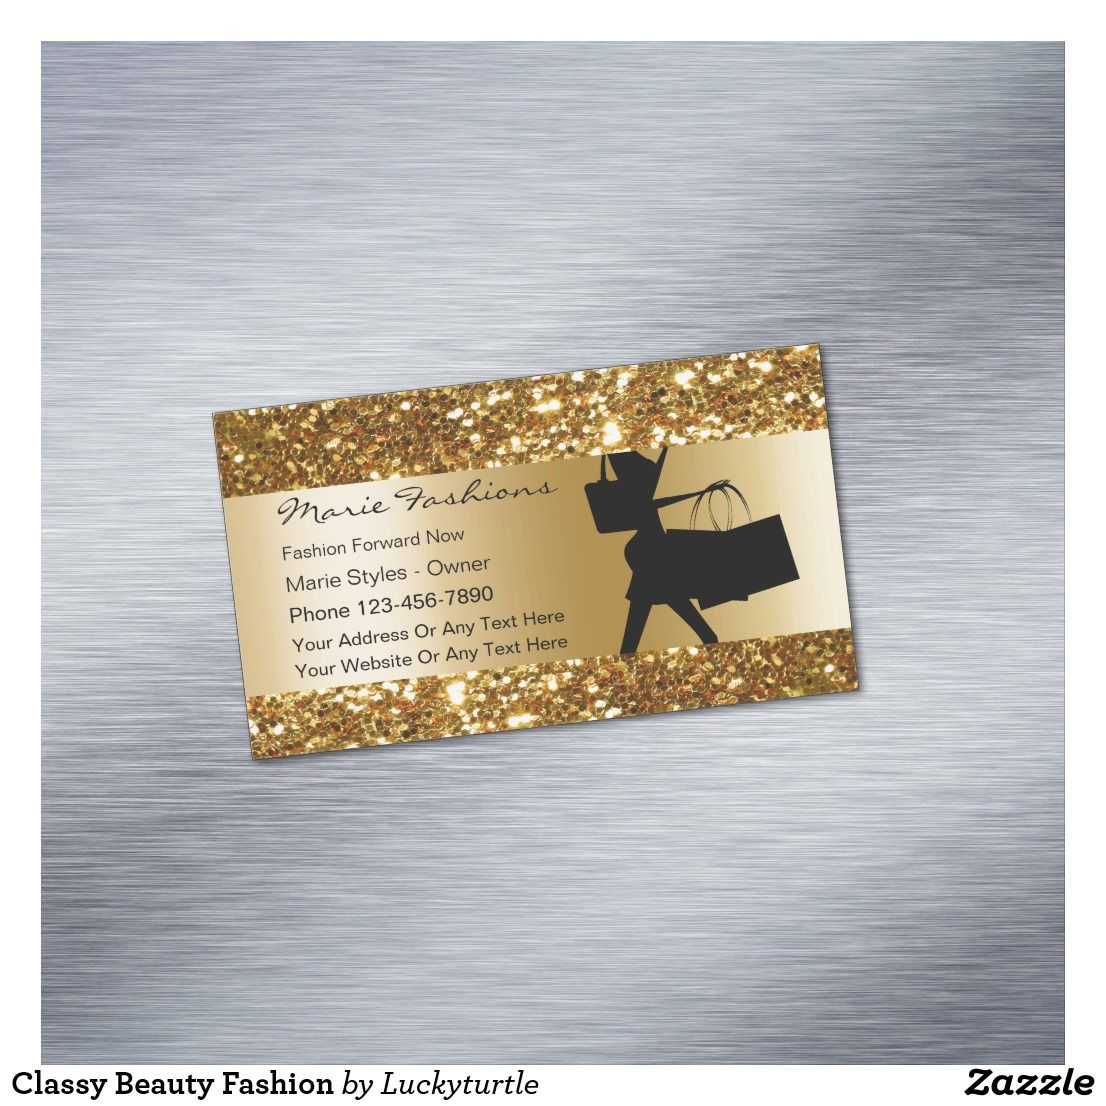 Classy Beauty Fashion Business Card Magnet | Business cards